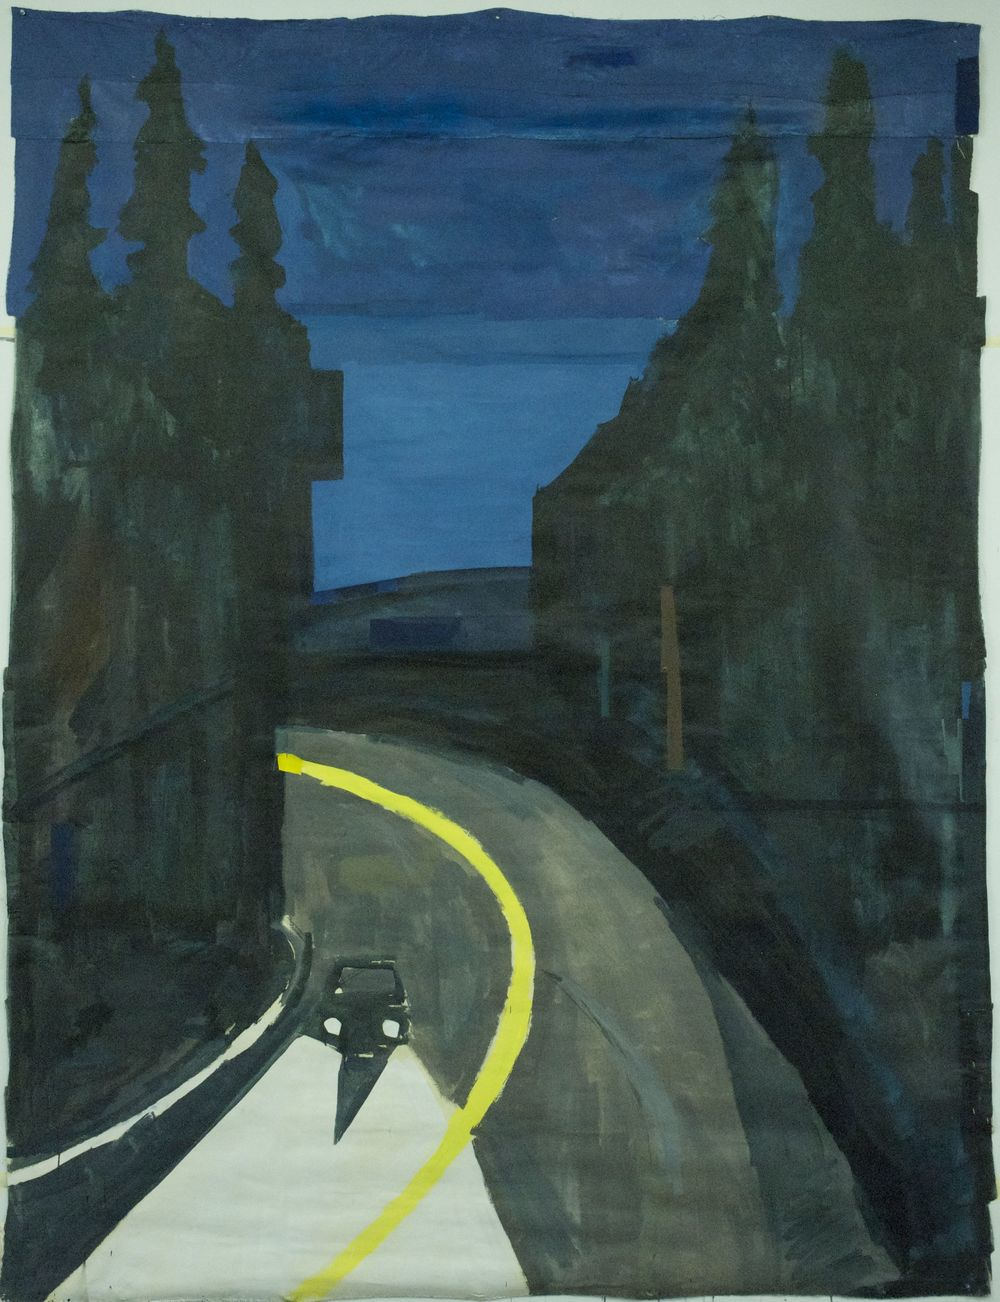 Night Drive , acrylic and gouache on linen, 96x72 inches, 2015